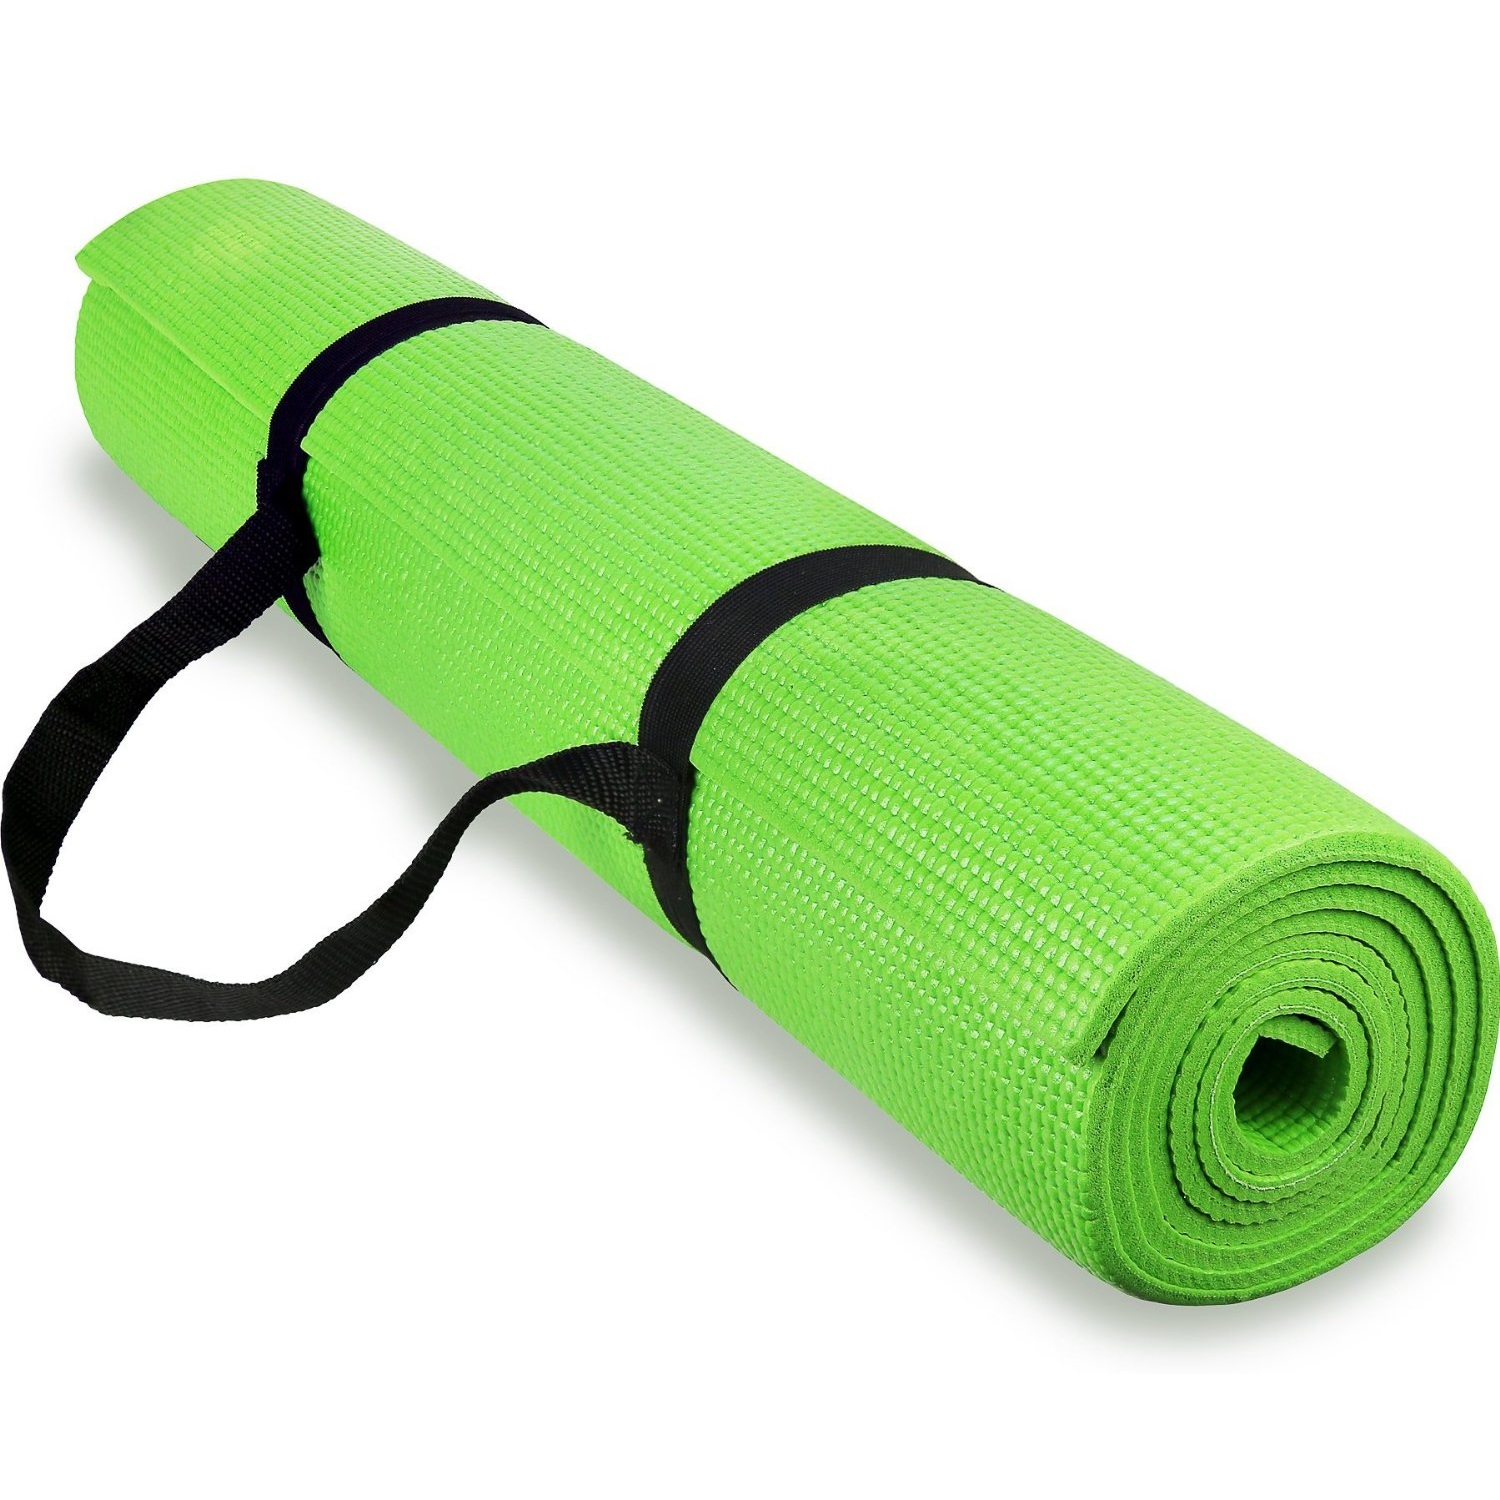 spoga anti-slip exercise yoga mat with carrying strap green